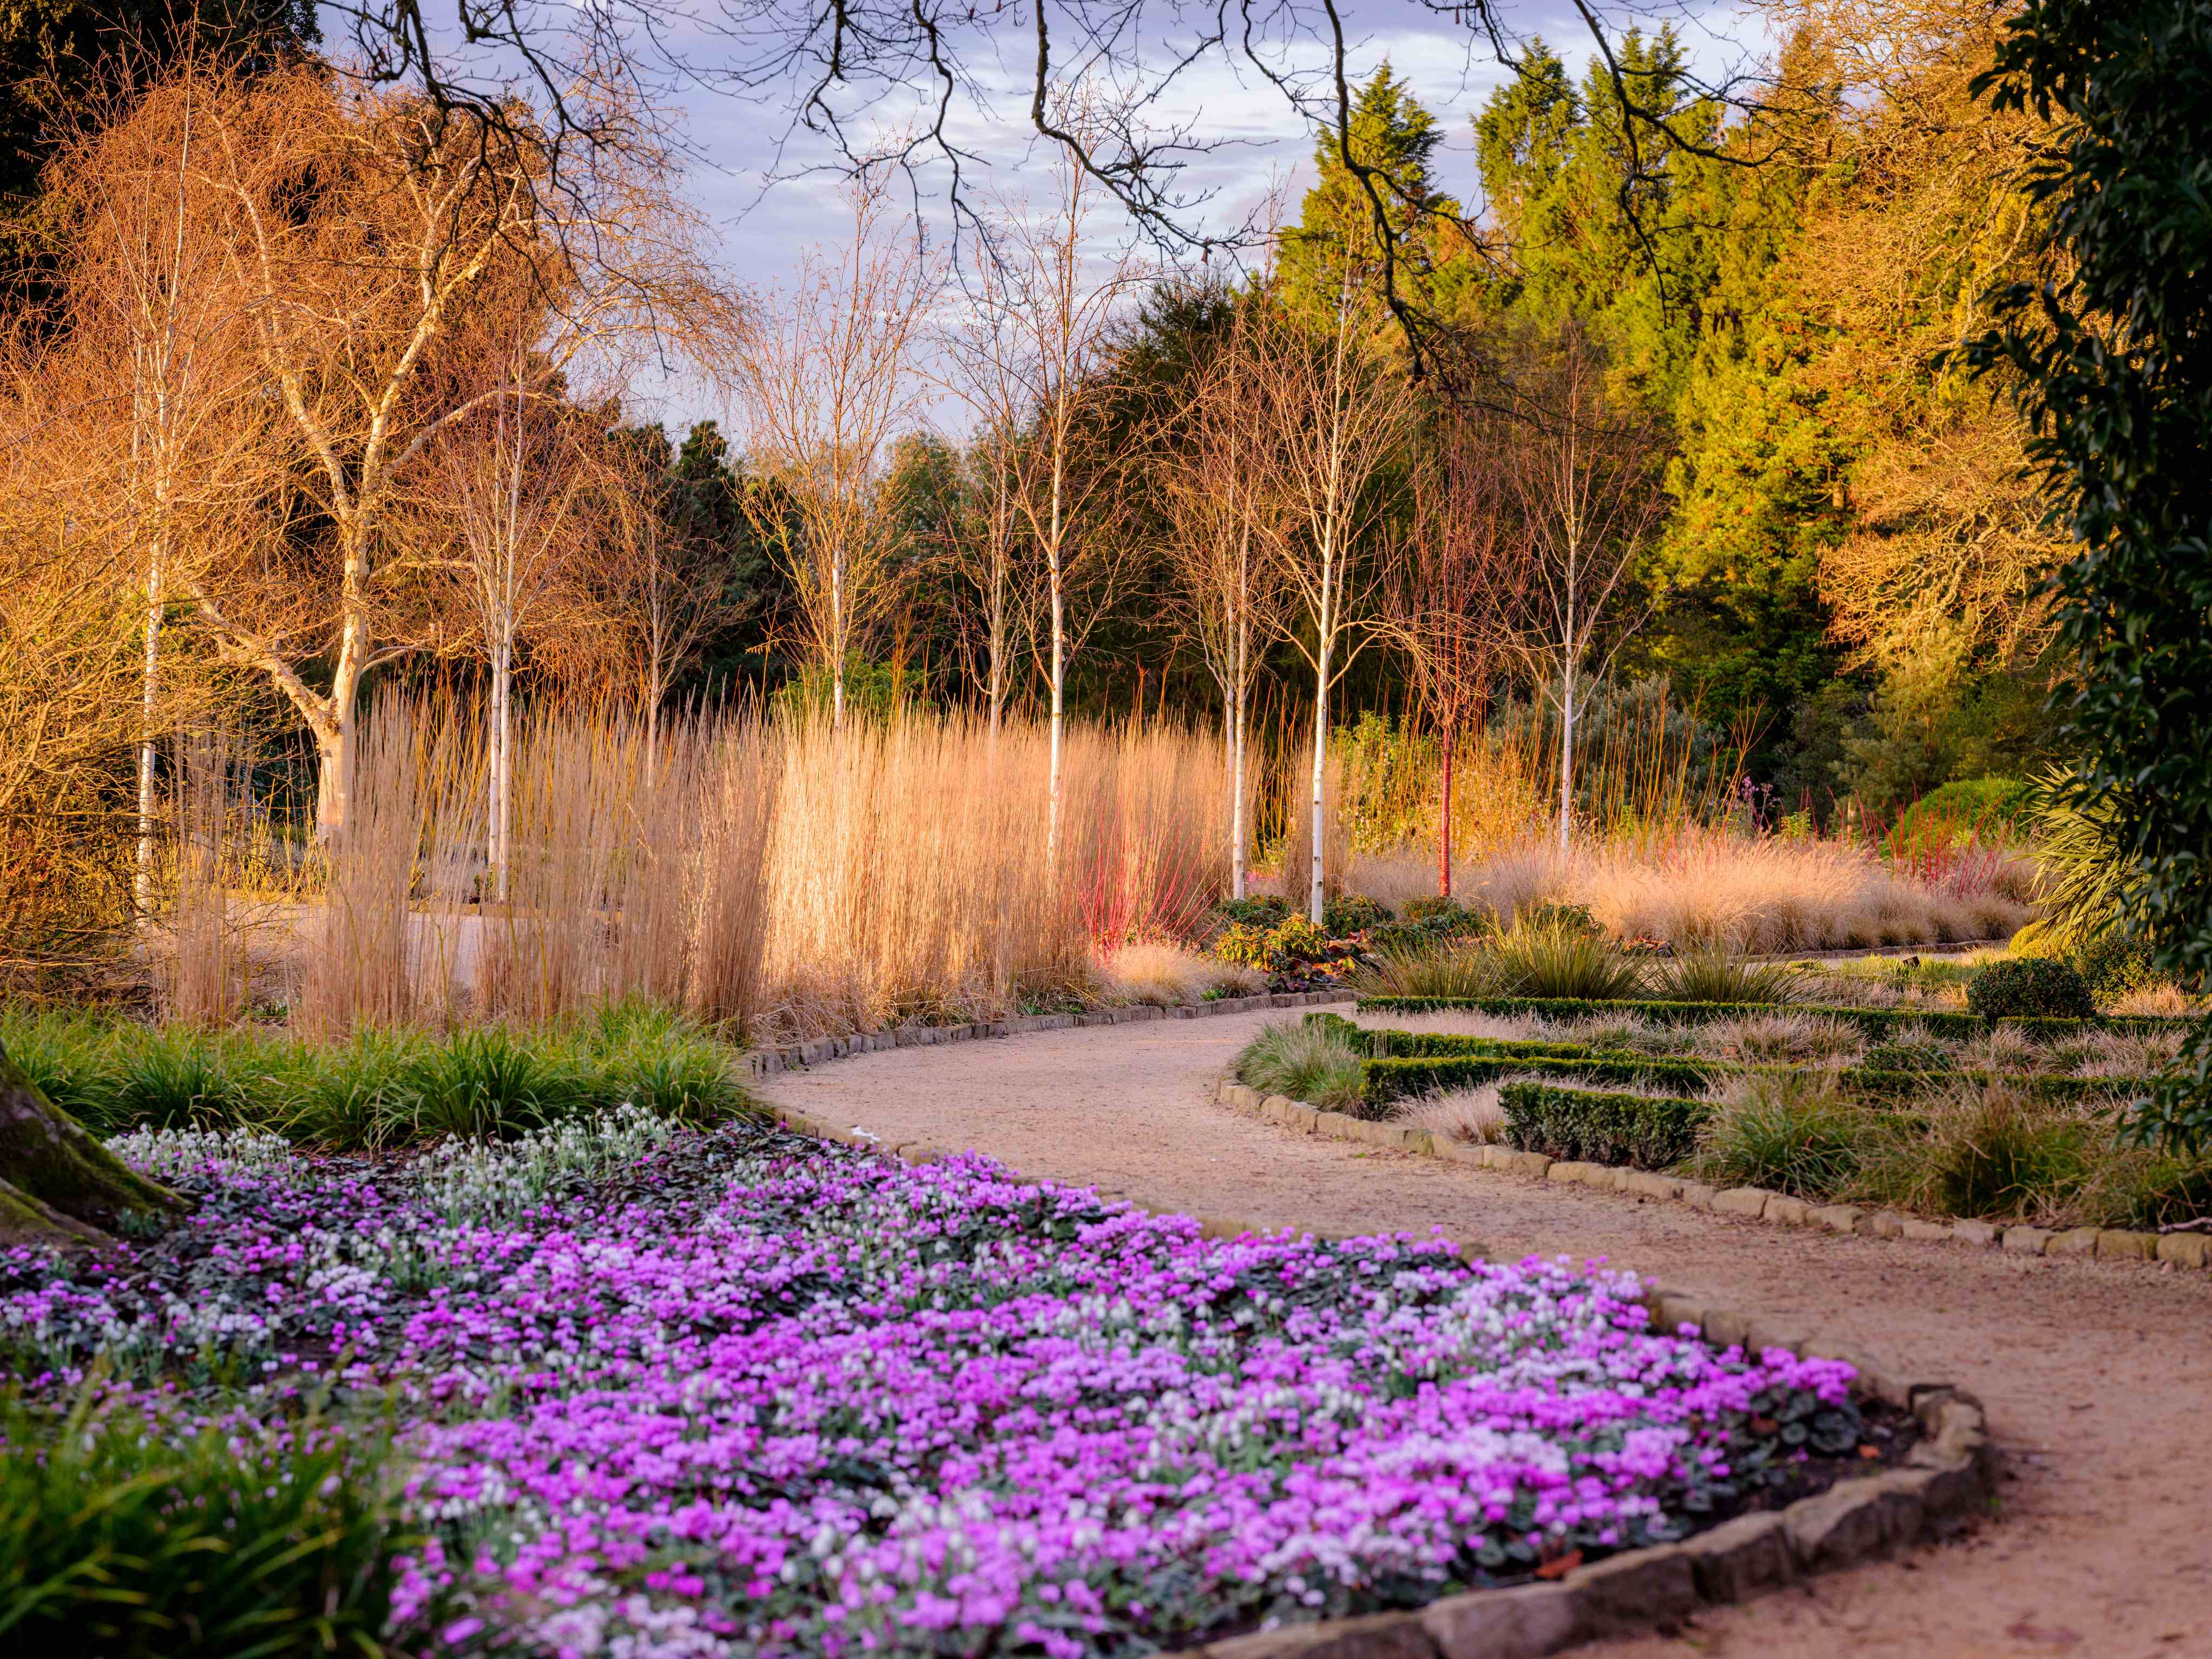 Colourful flowers in the Winter Garden at Wakehurst in wintertime